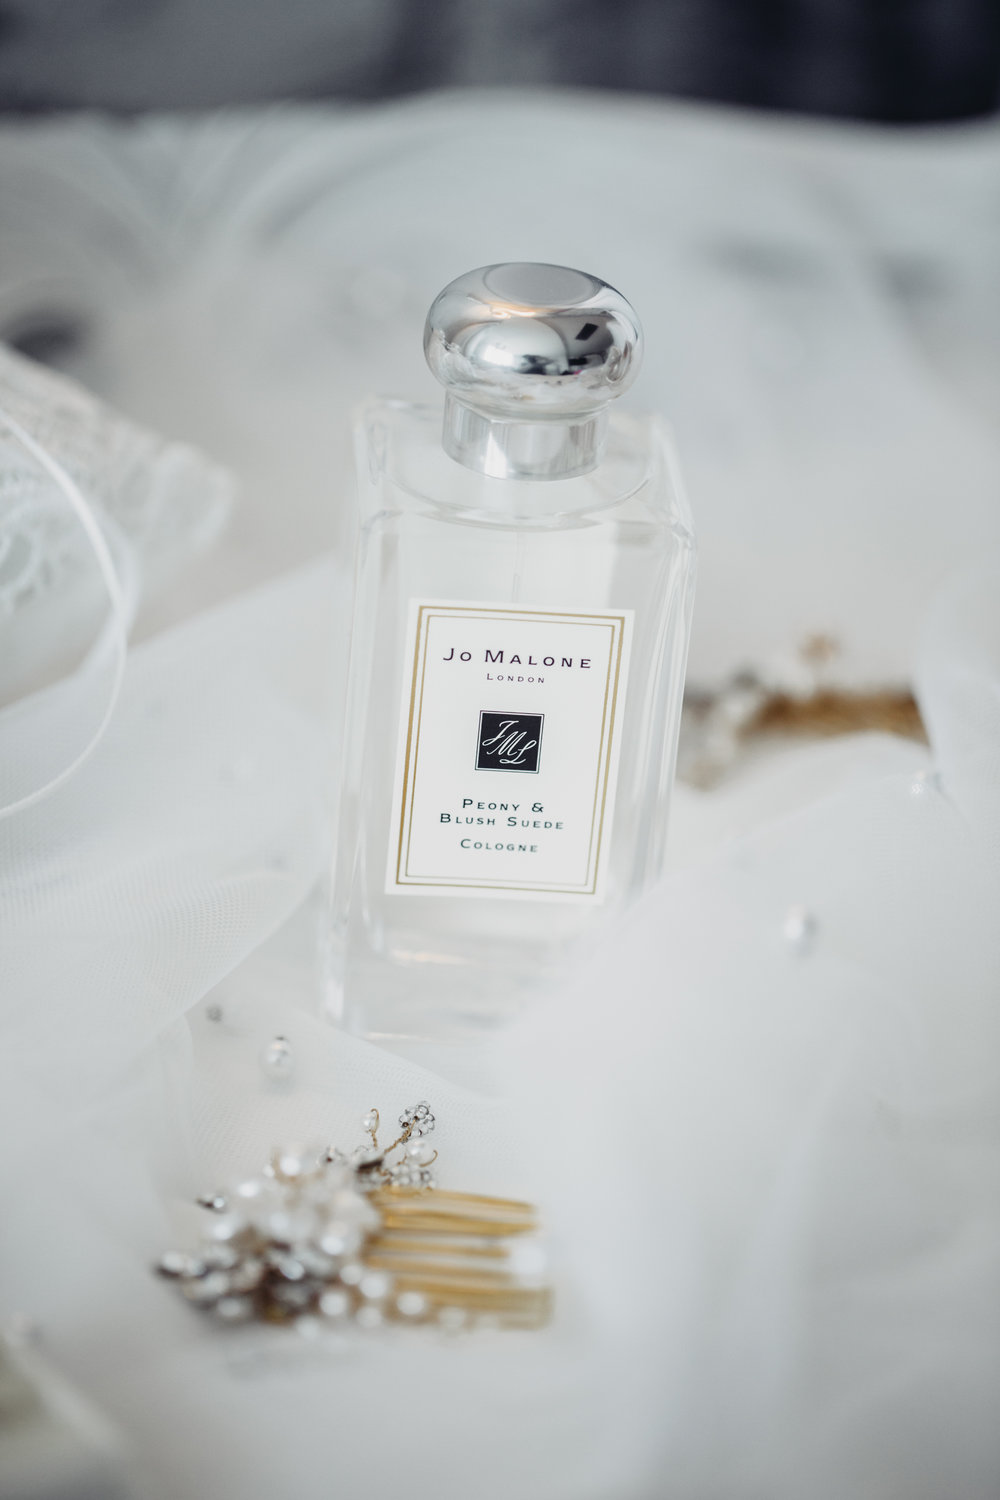 Luxury Destination Wedding Planning and Event Design by  Andrea Eppolito Events  · Photos by  Stephen Salazar  · Jo Malone Wedding Day Perfume.